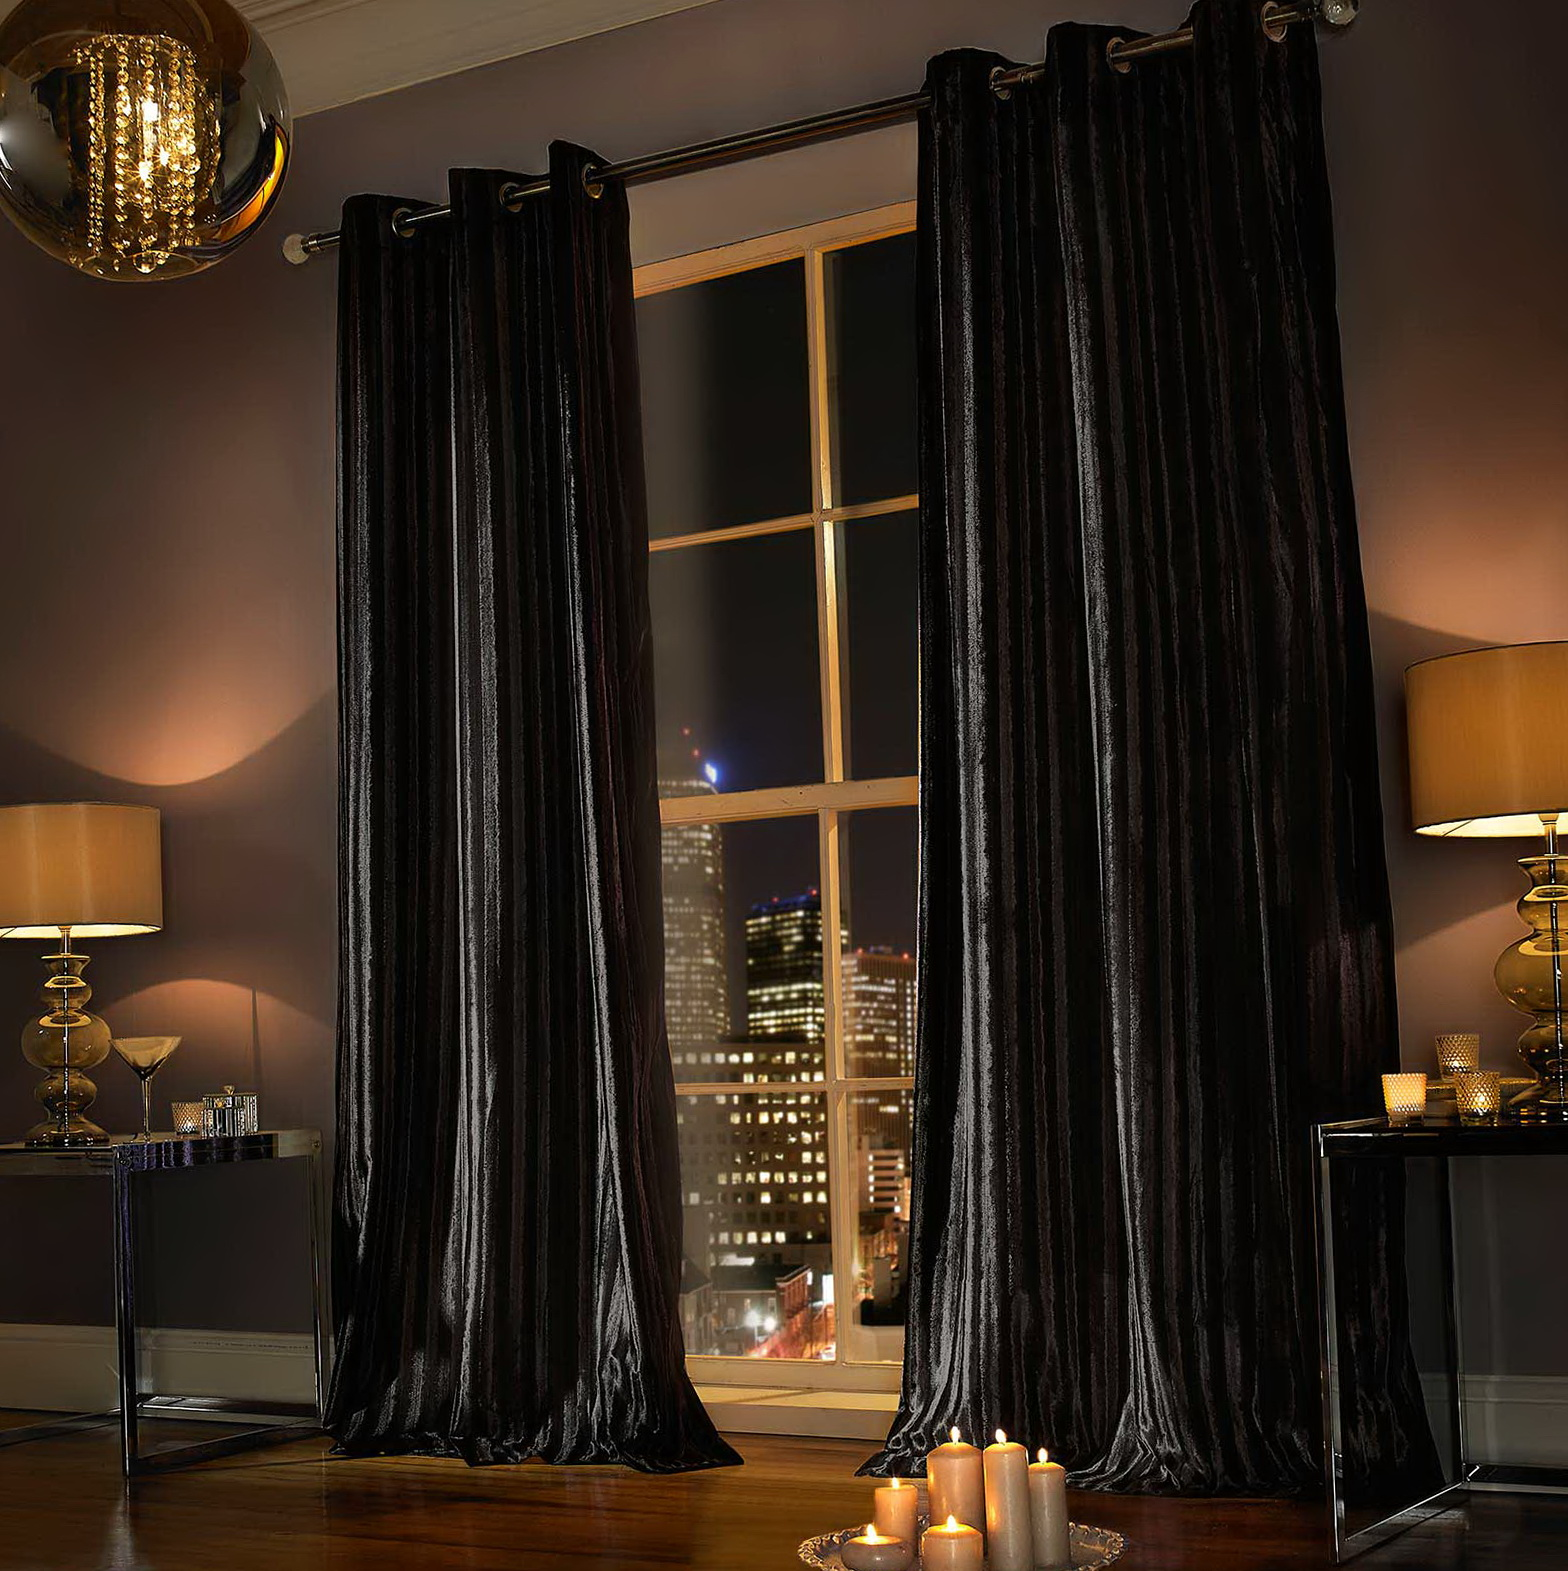 market charming beige awesome velvet rugs design for your black with curtain world decor window steel curtains rod